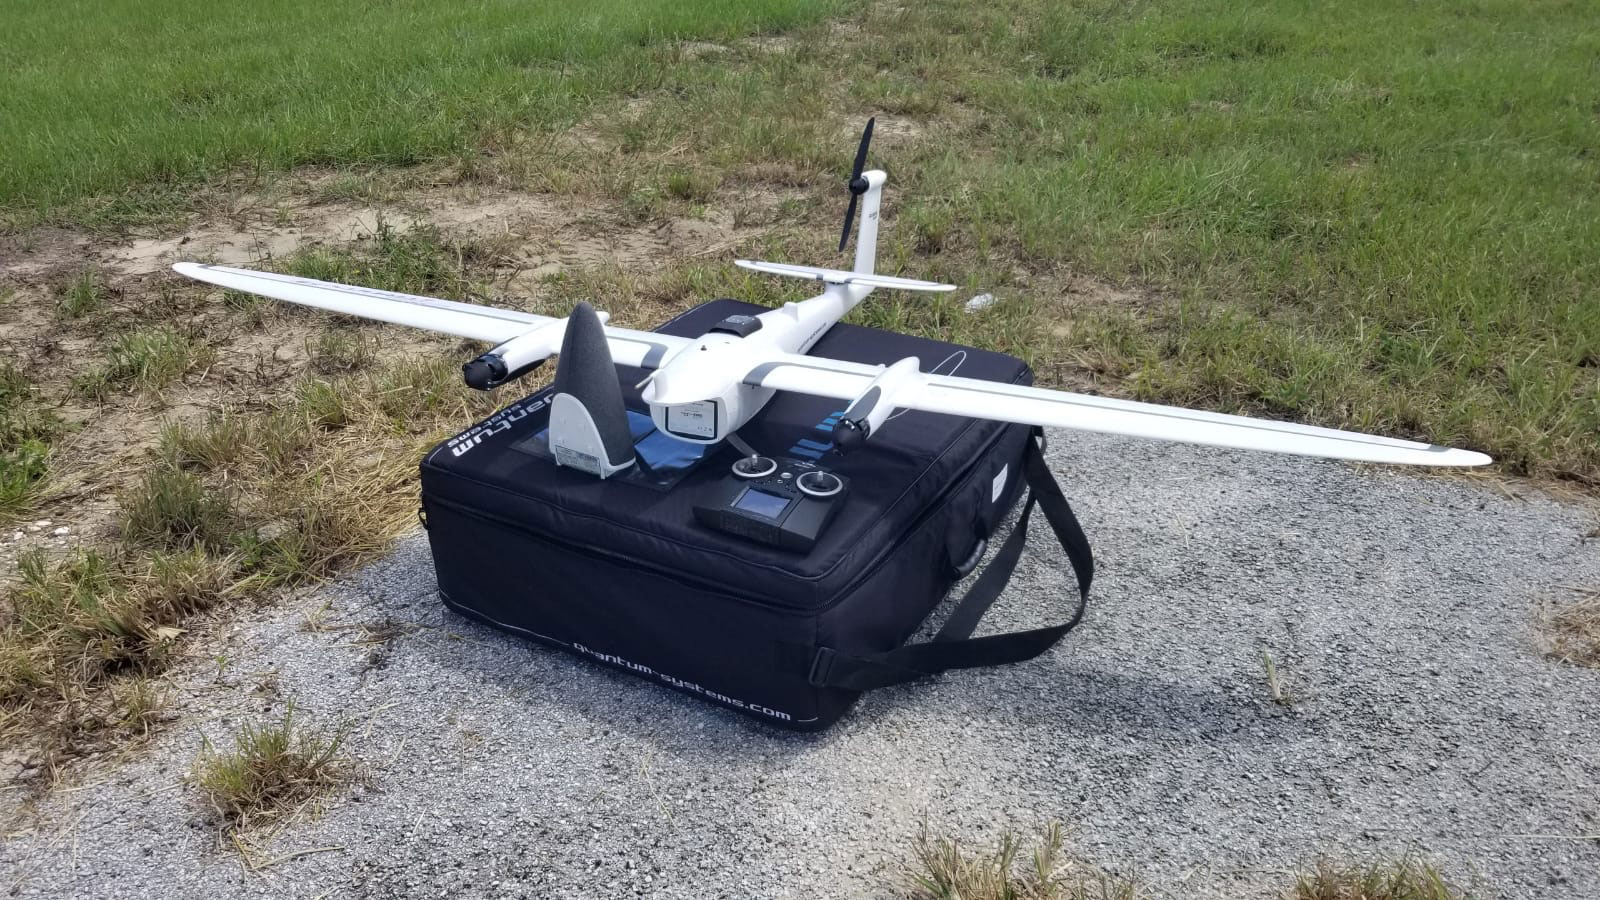 A Quantum-Systems drone ready for take off